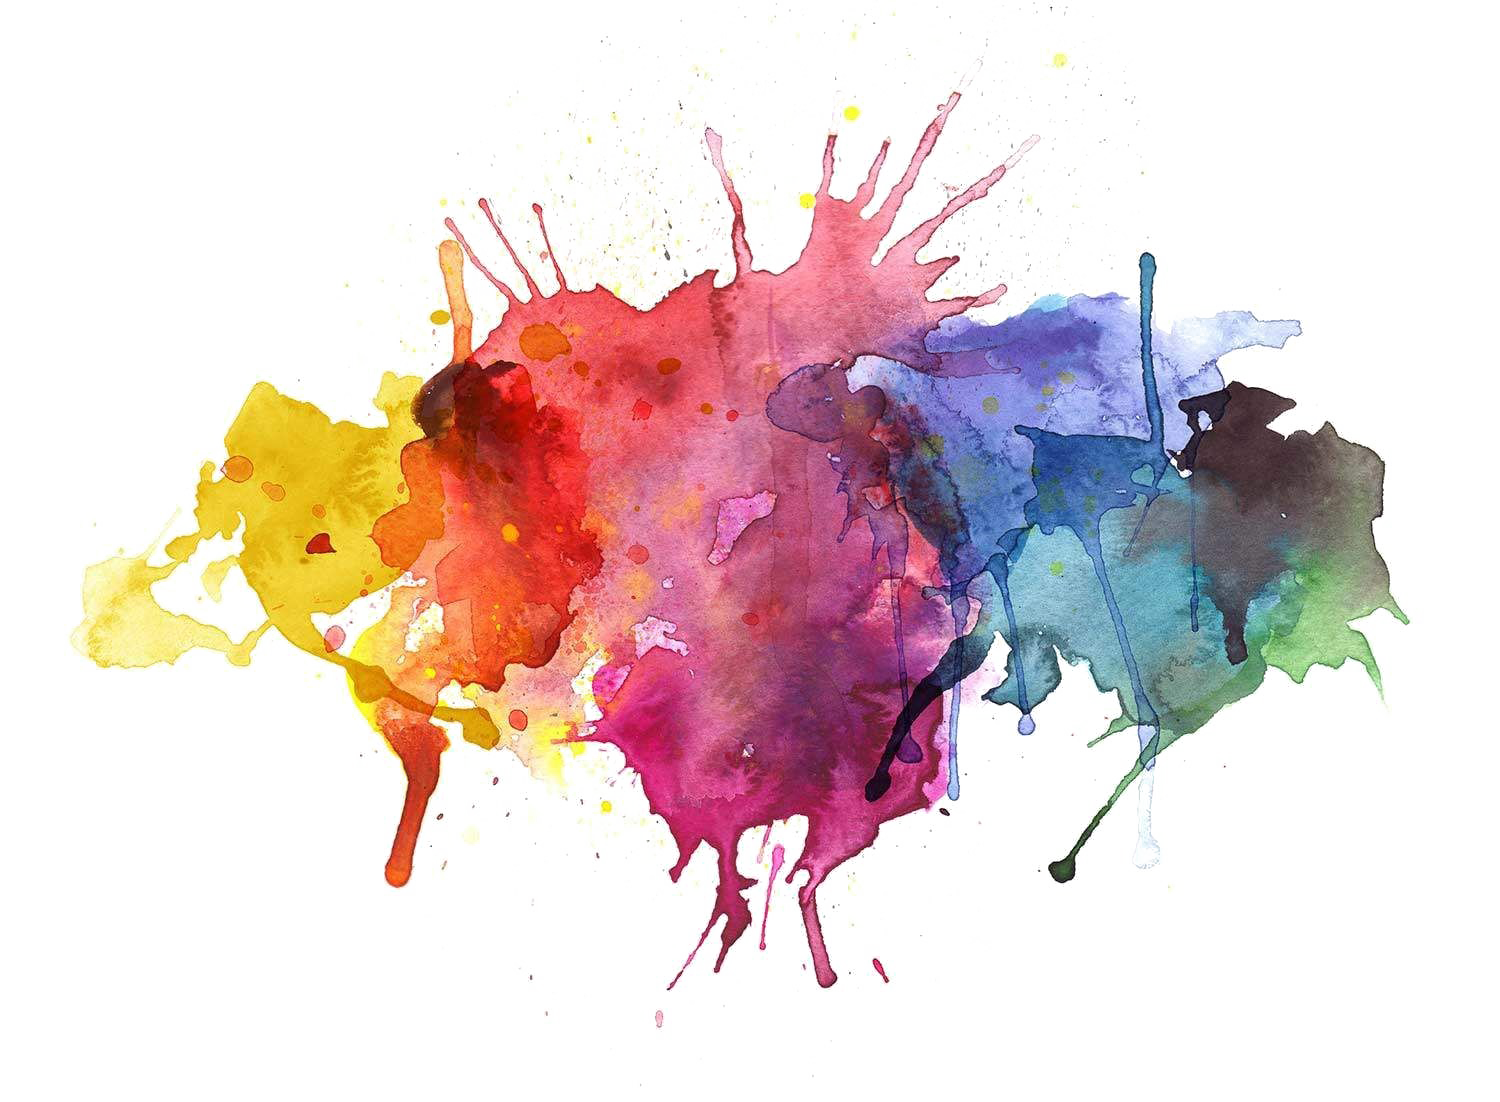 Transparent watercolor png. Abstract images mart